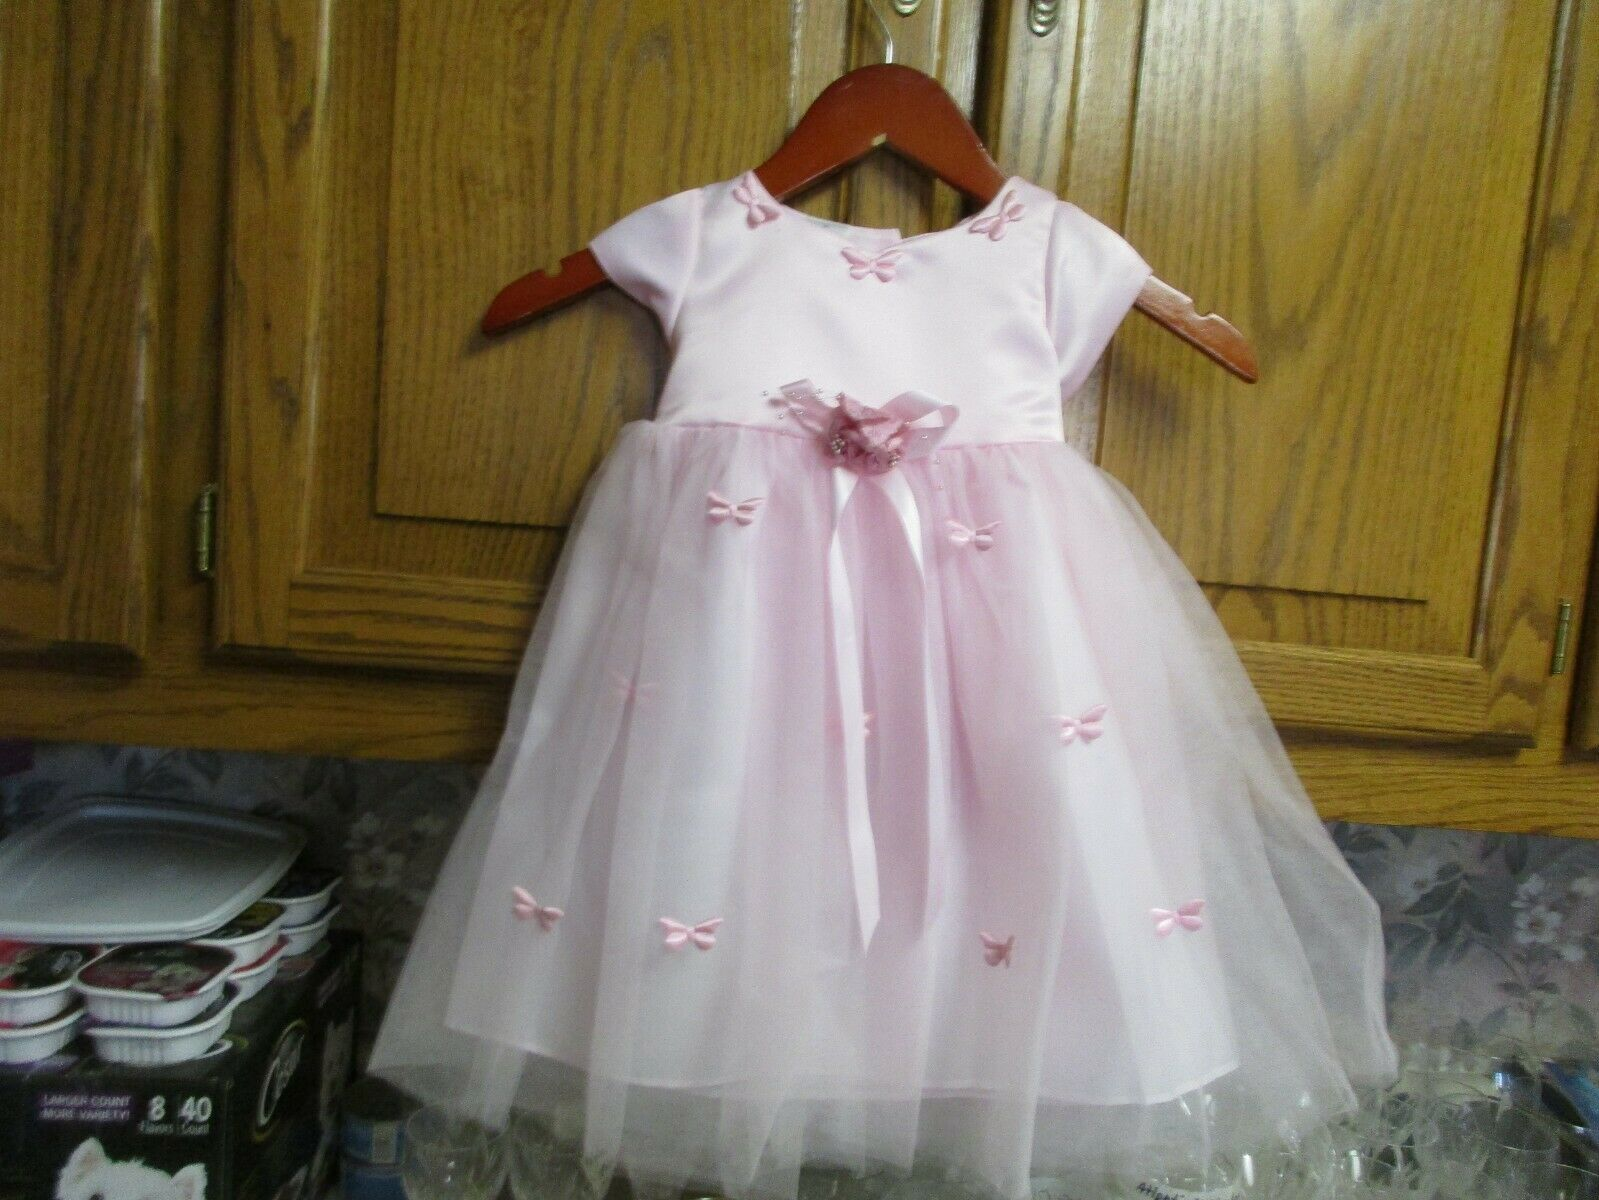 5135 K.I.D. COLLECTION 5135 PINK SZ M TODDLER Headband DRESS GOWN SPRING NWT